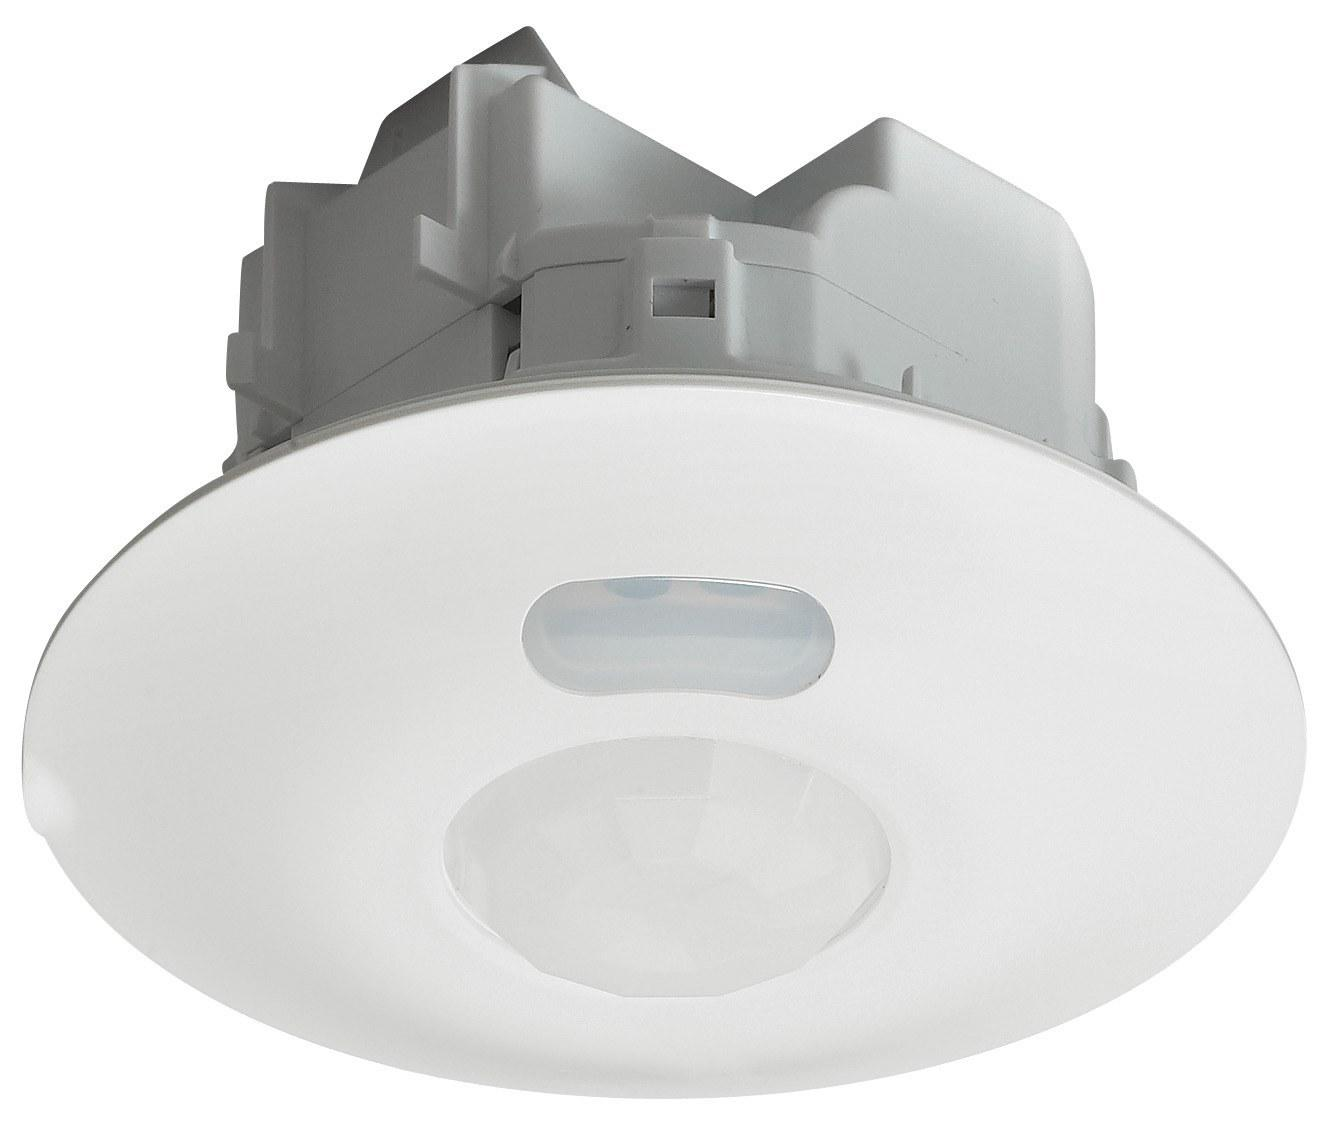 Occupancy sensors for efficient lighting control - Leading Architecture +  Design